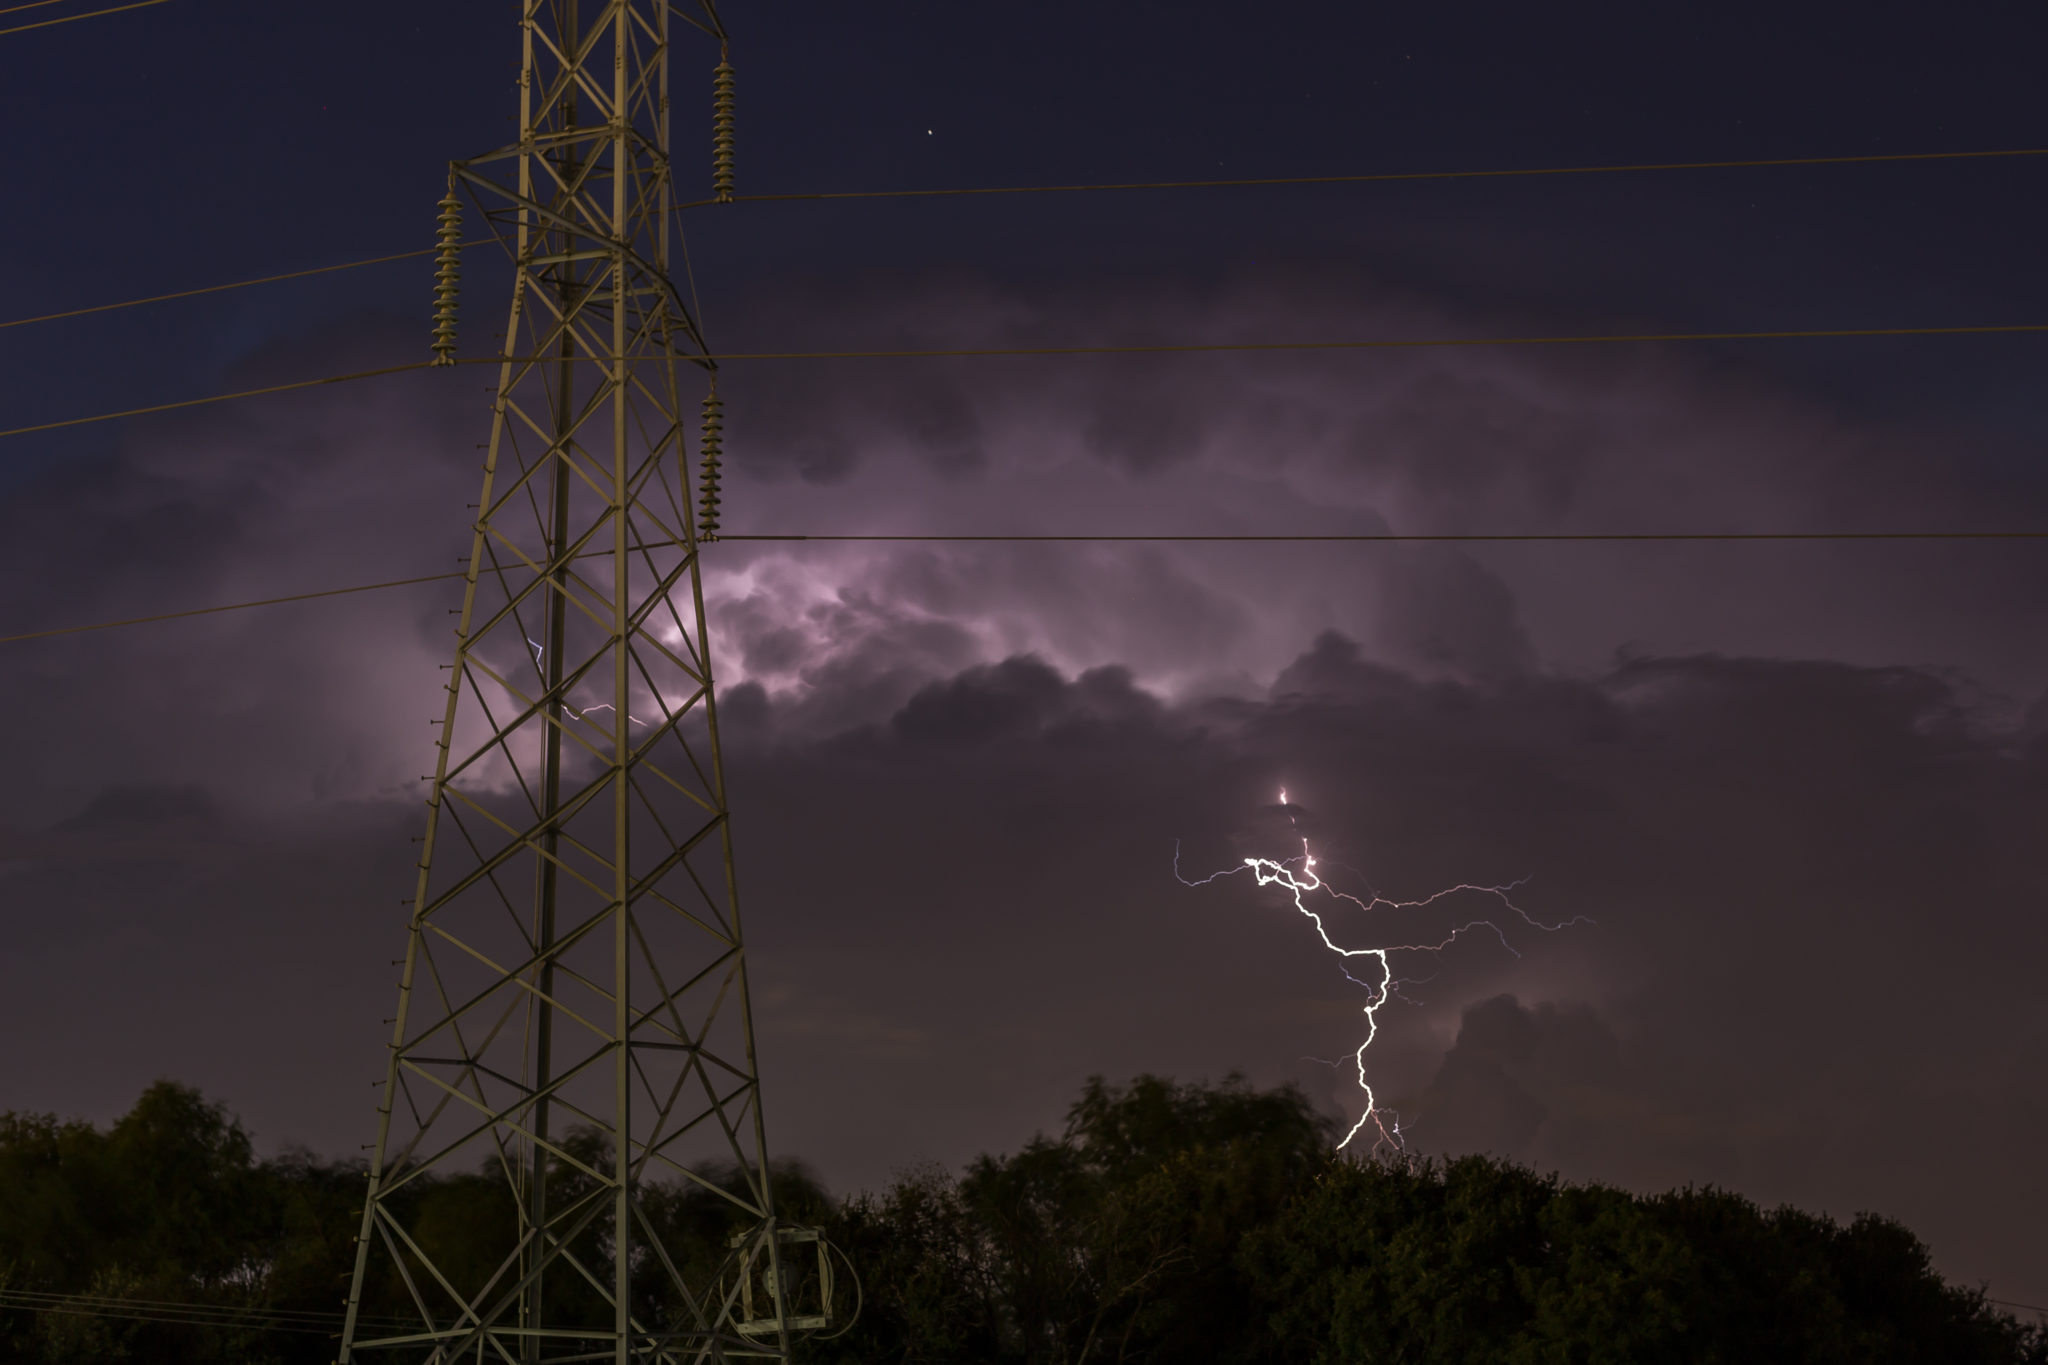 Austin, TX - The storm is coming... Photo of lightning in a purple dark sky